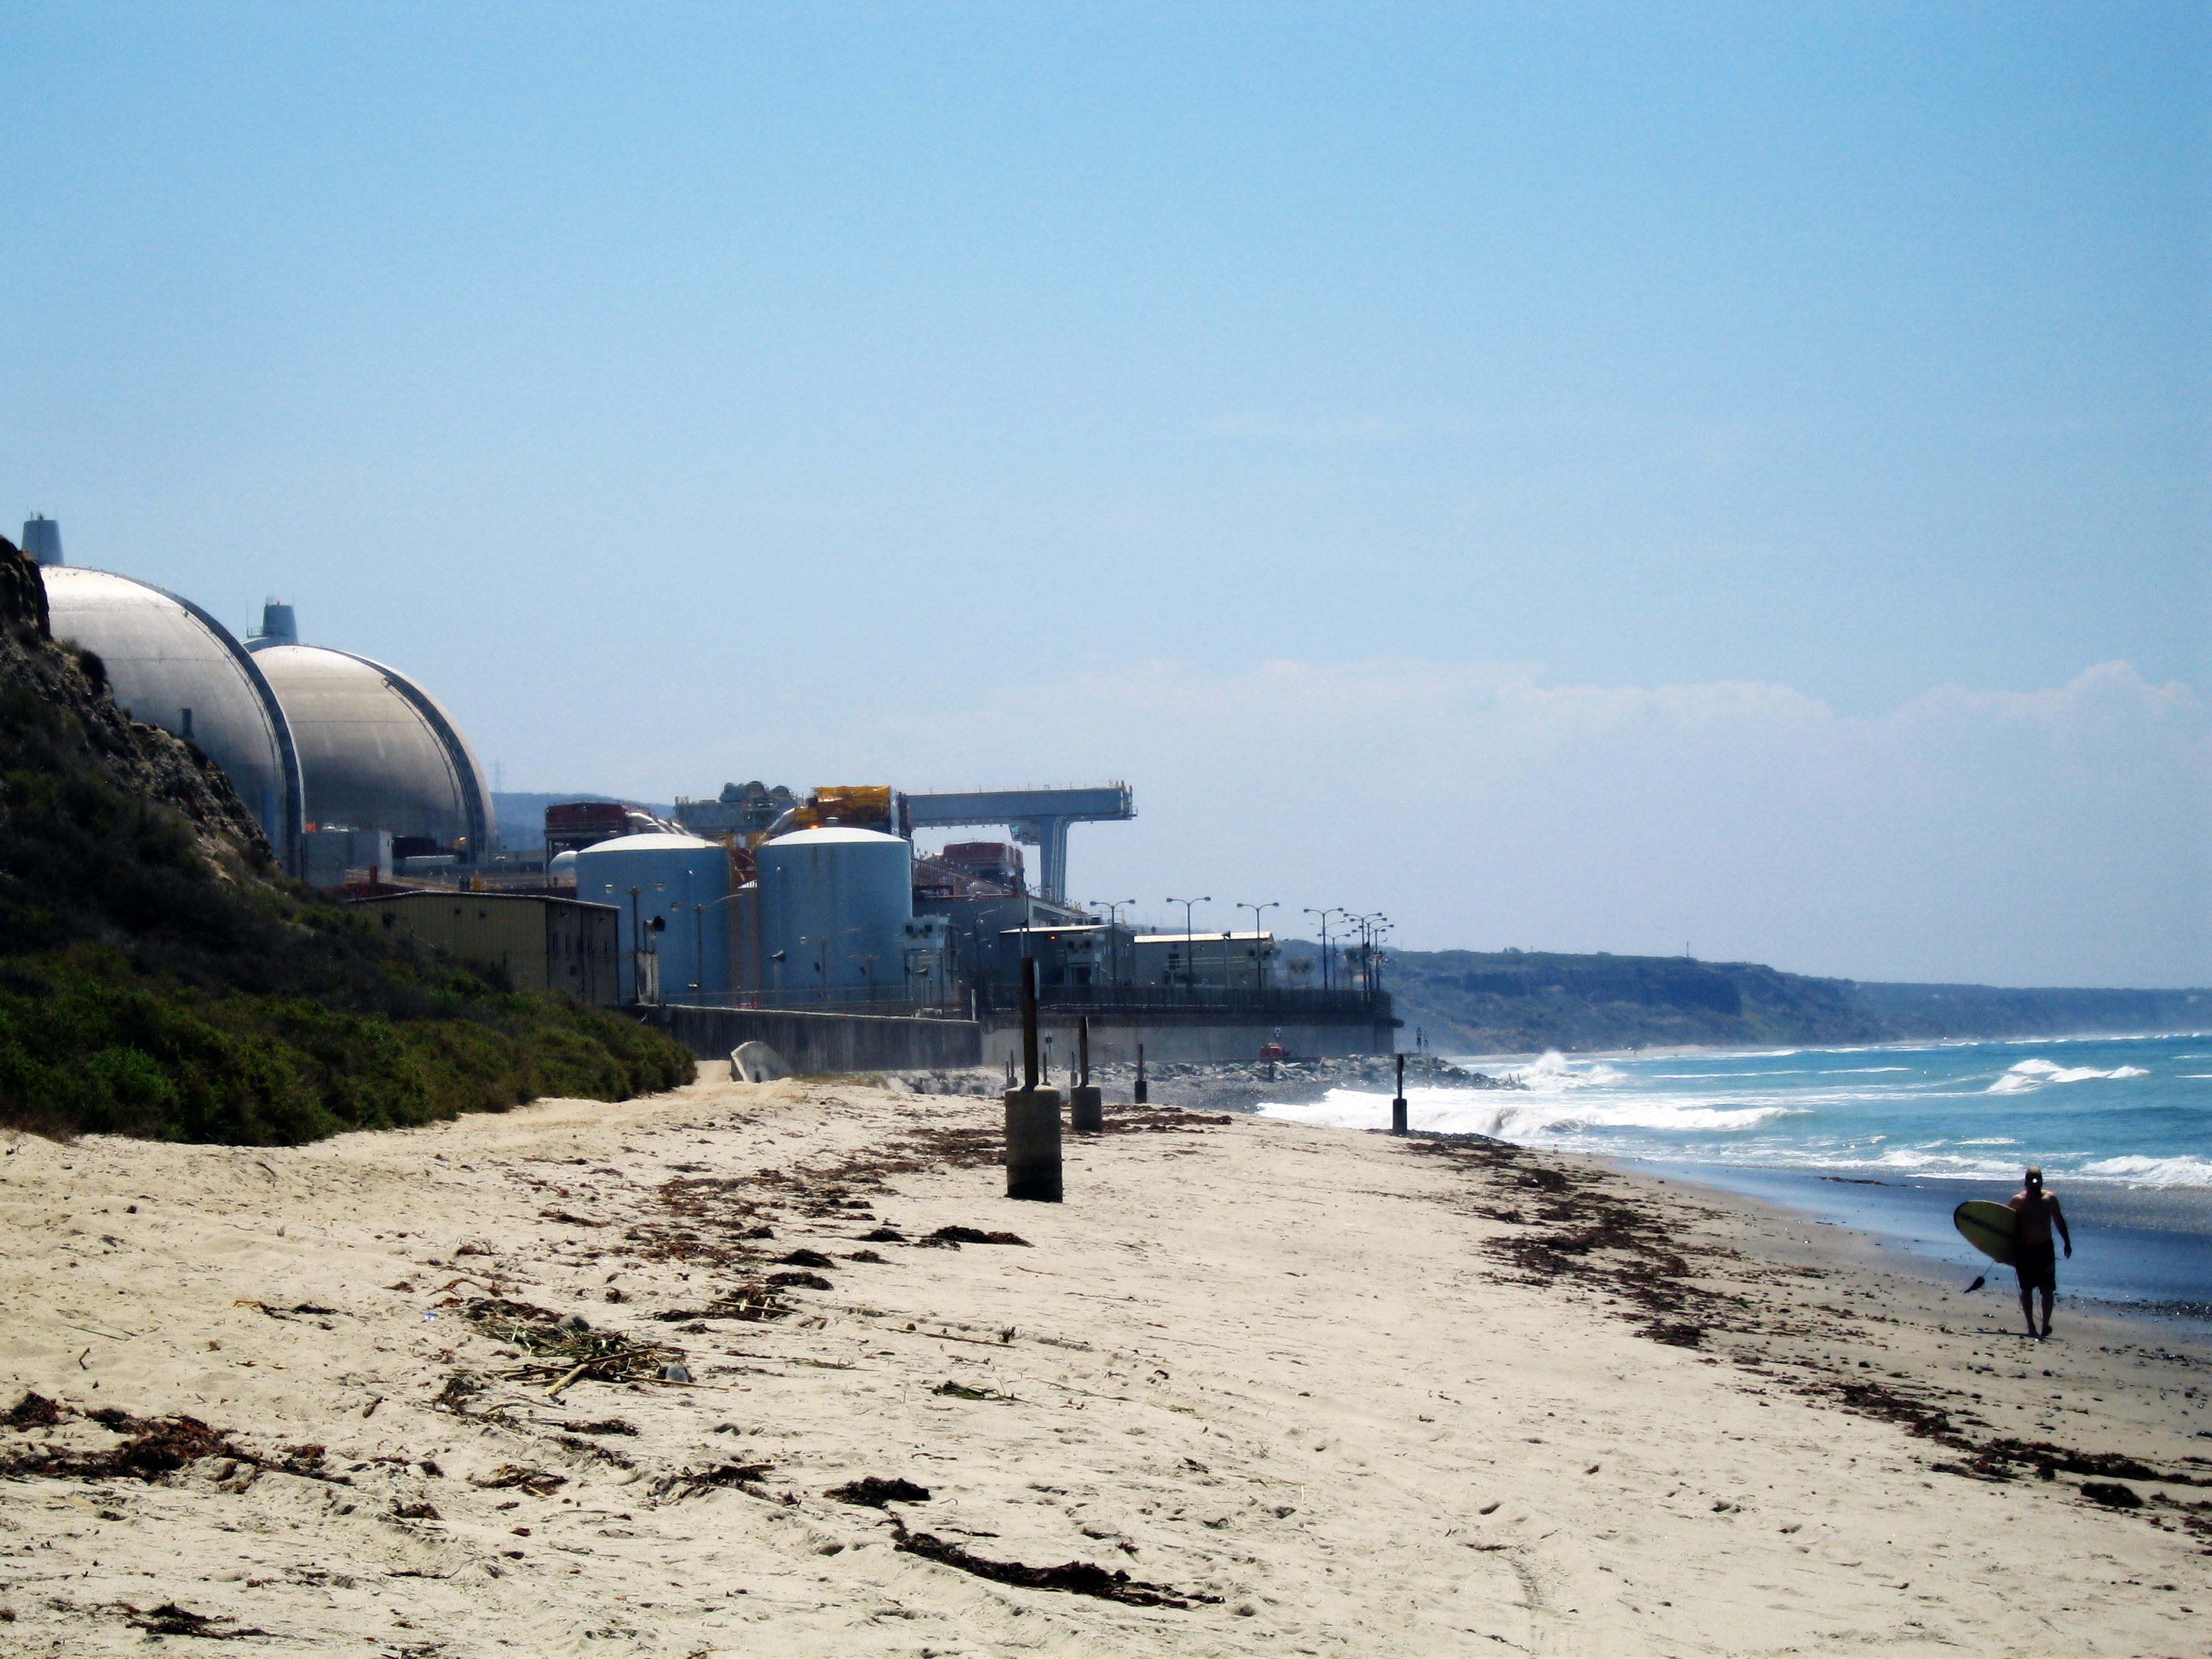 San_Onofre_Nuclear_Generating_Station__2007_(01).jpg